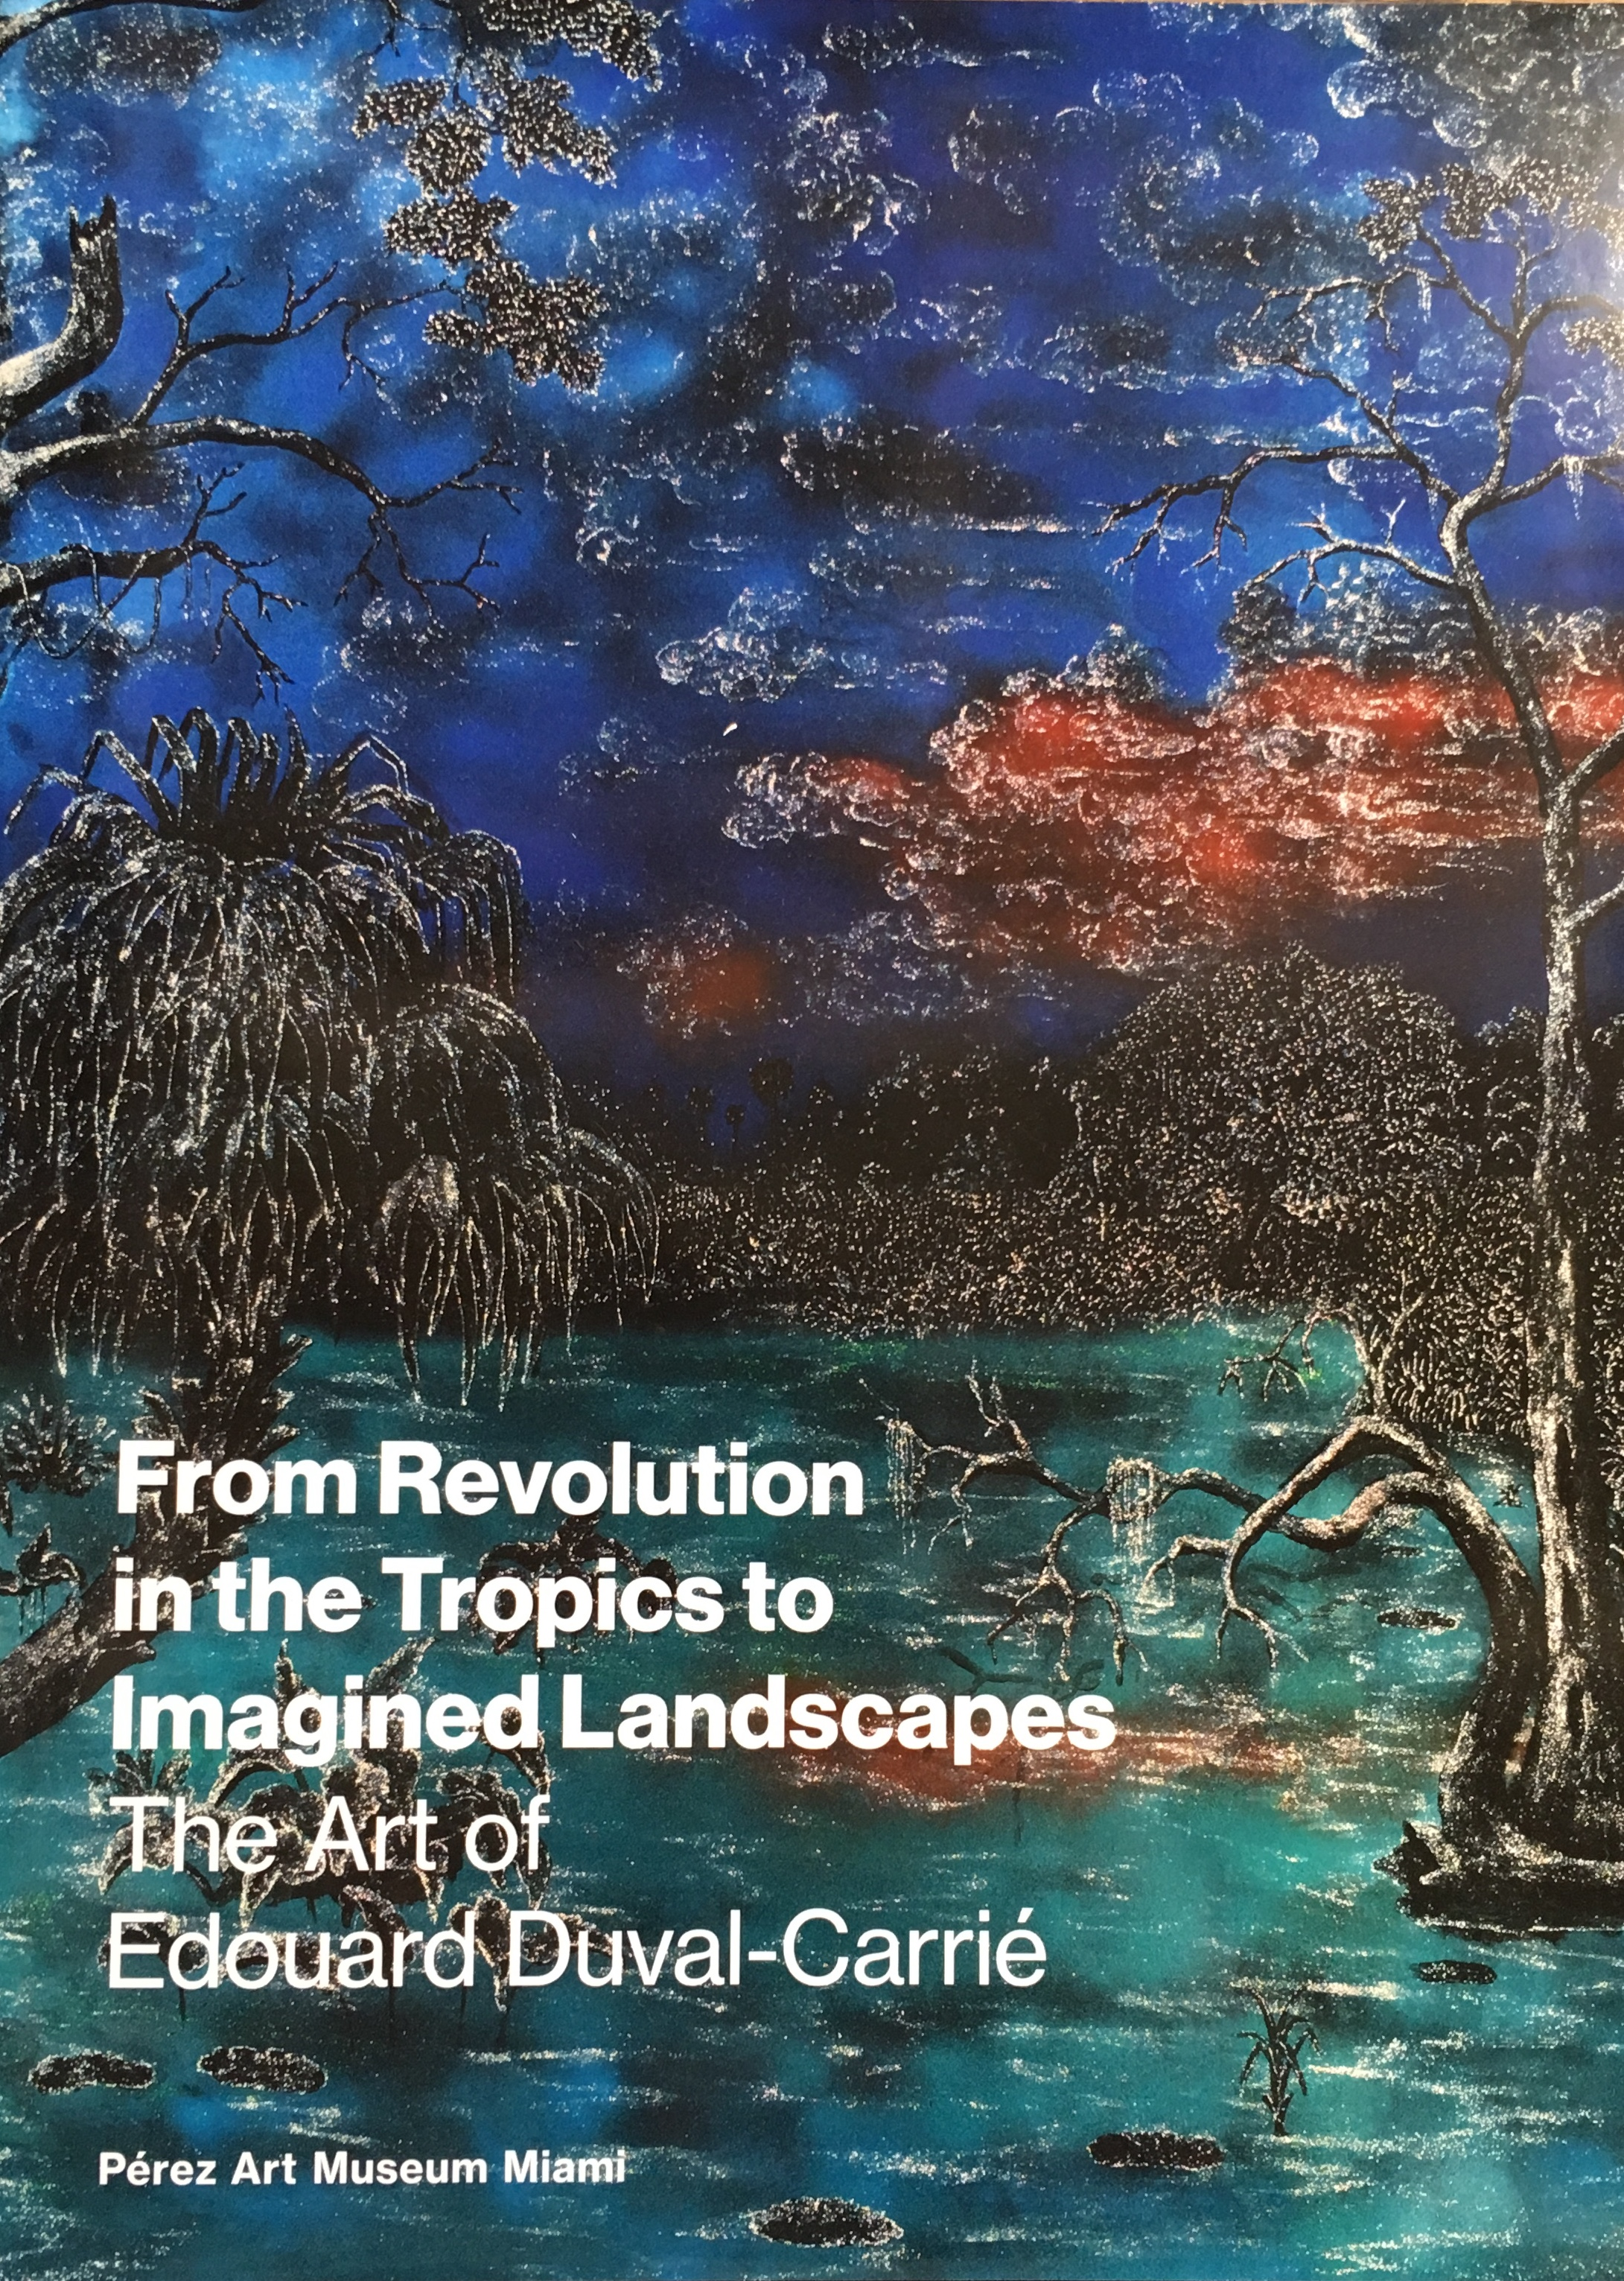 From Revolution in the Tropics to Imagined Landscapes The Art by Edouard Duval-Carrié